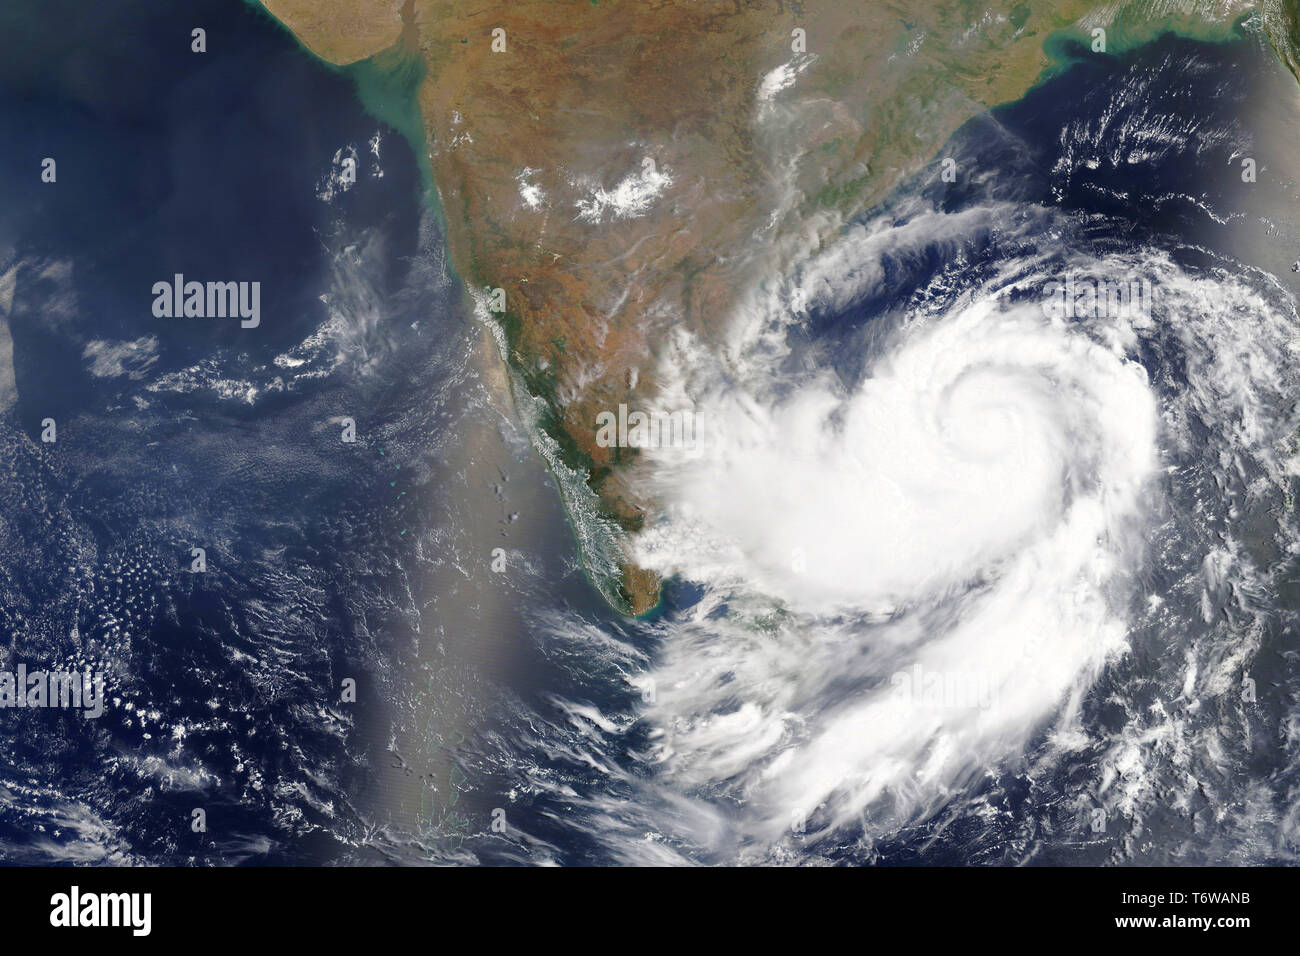 Cyclone Fani heading towards India in 2019 - Elements of this image furnished by NASA Stock Photo